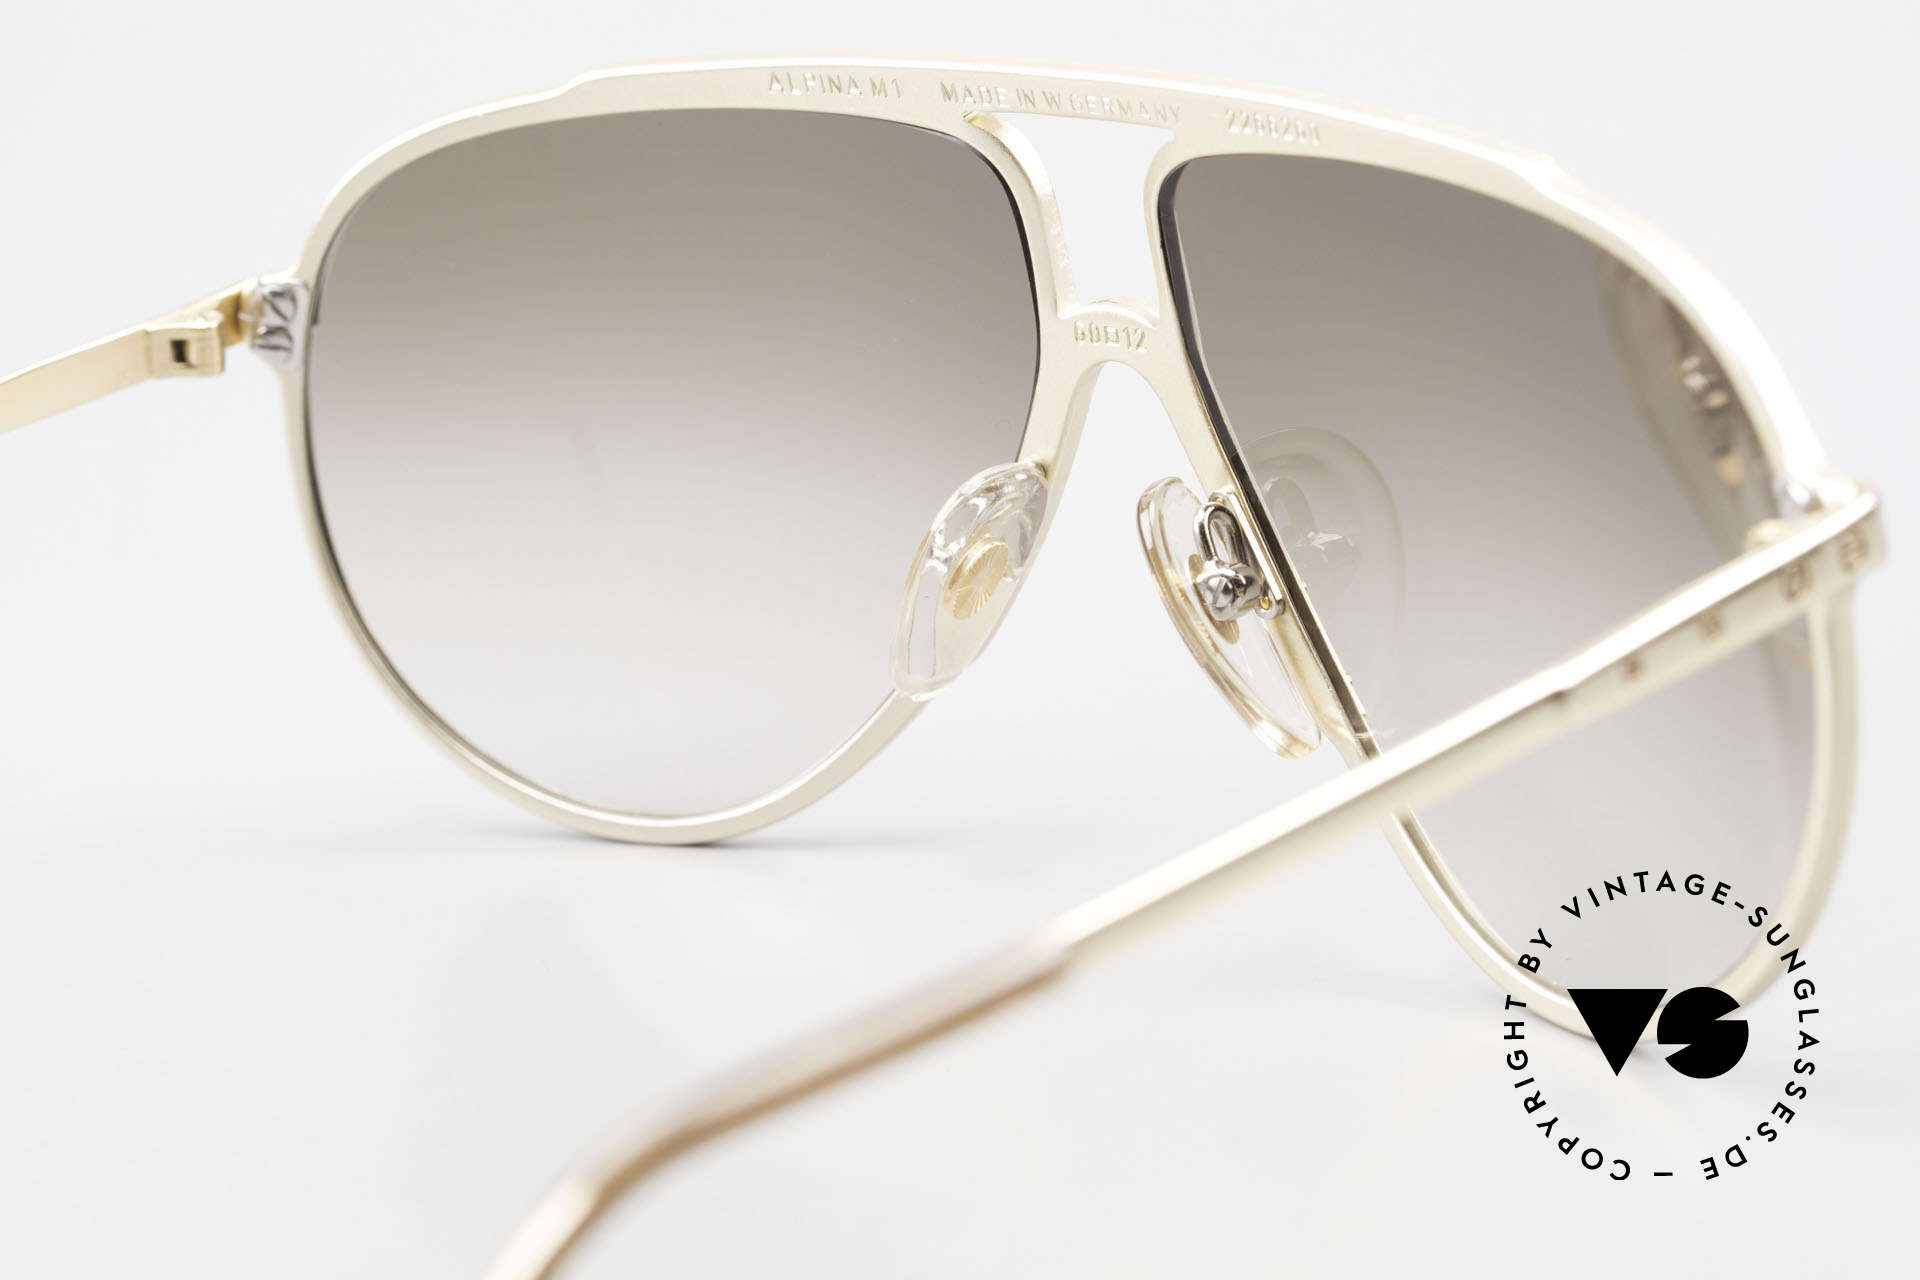 Alpina M1 Limited Edition 80's Version, NO RETRO sunglasses; the old ORIGINAL from 1987!, Made for Men and Women